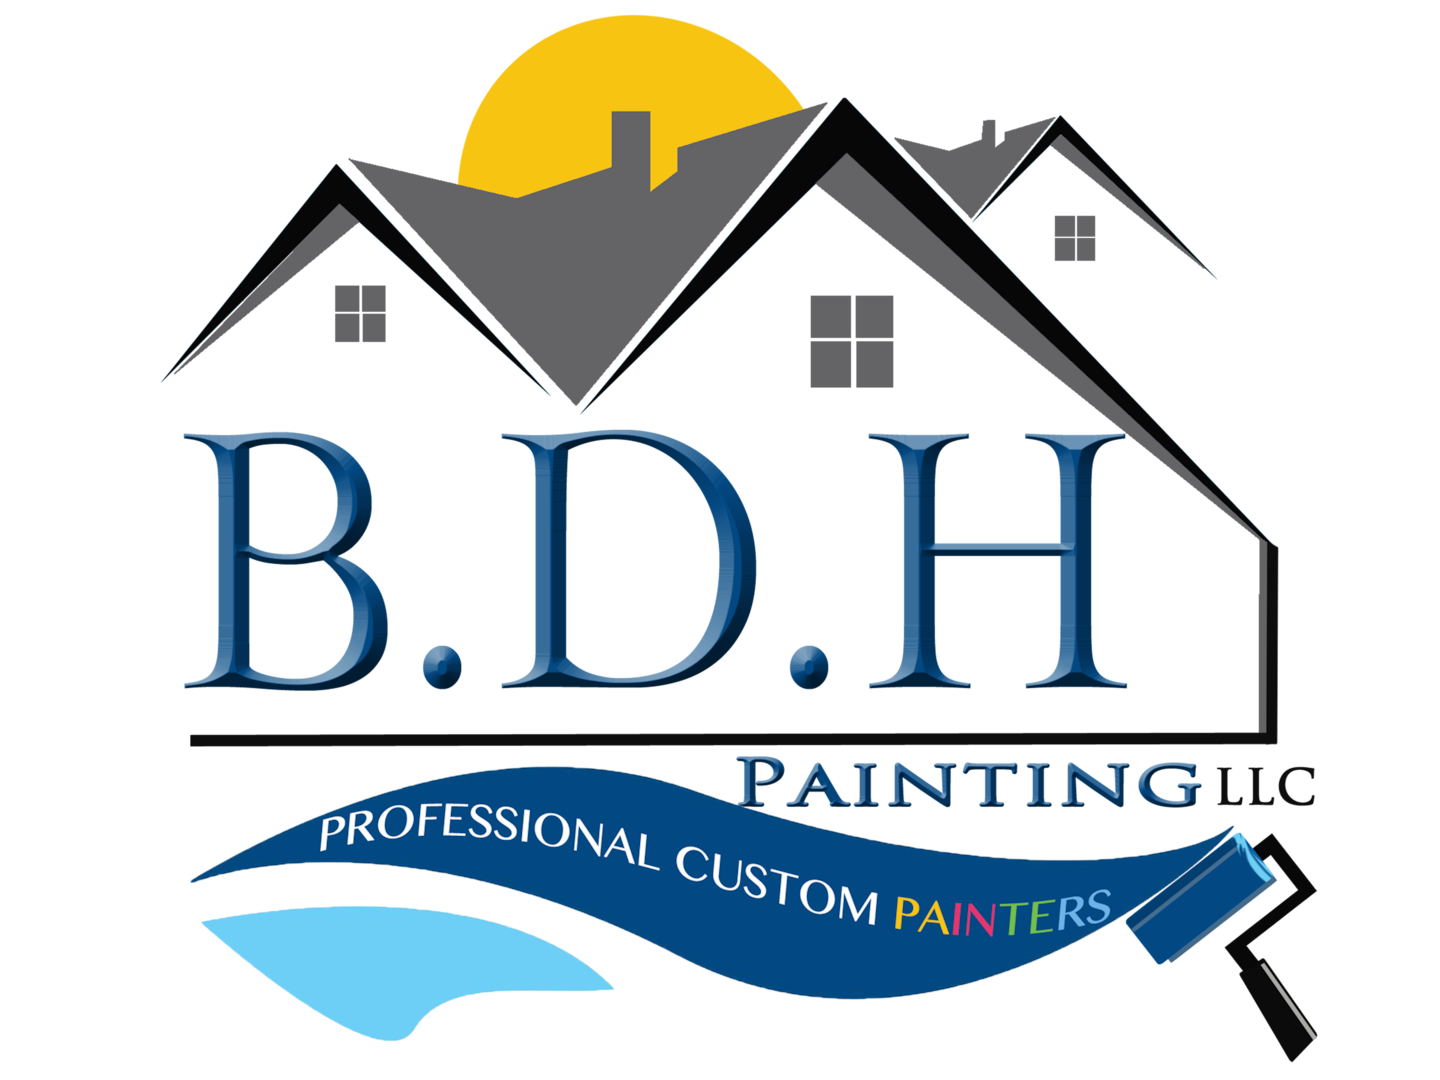 BDH Custom Painting LLC